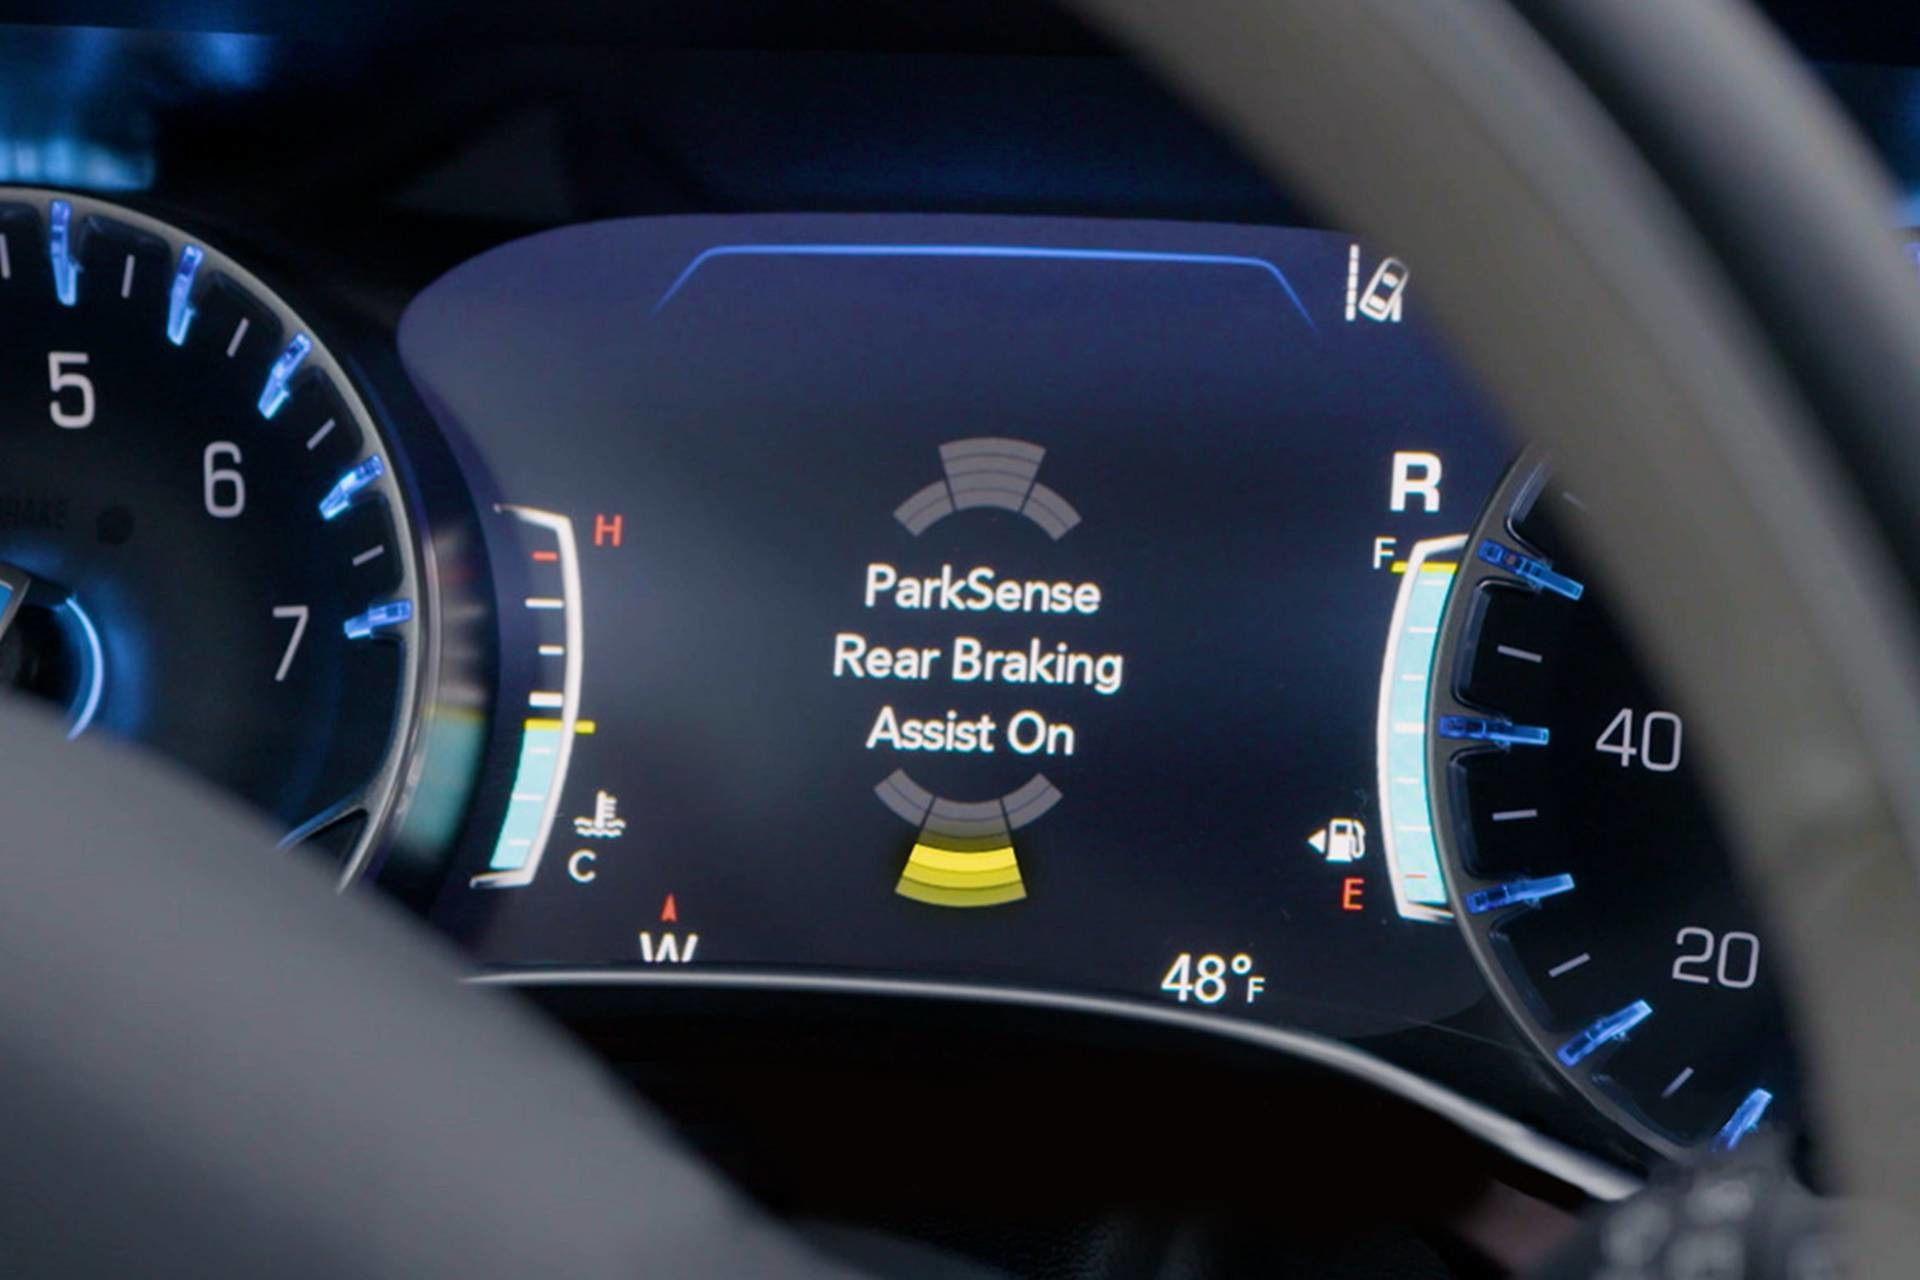 2019 Chrysler Pacifica Hybrid interior Park-Sense Rear Park Assist with Stop display